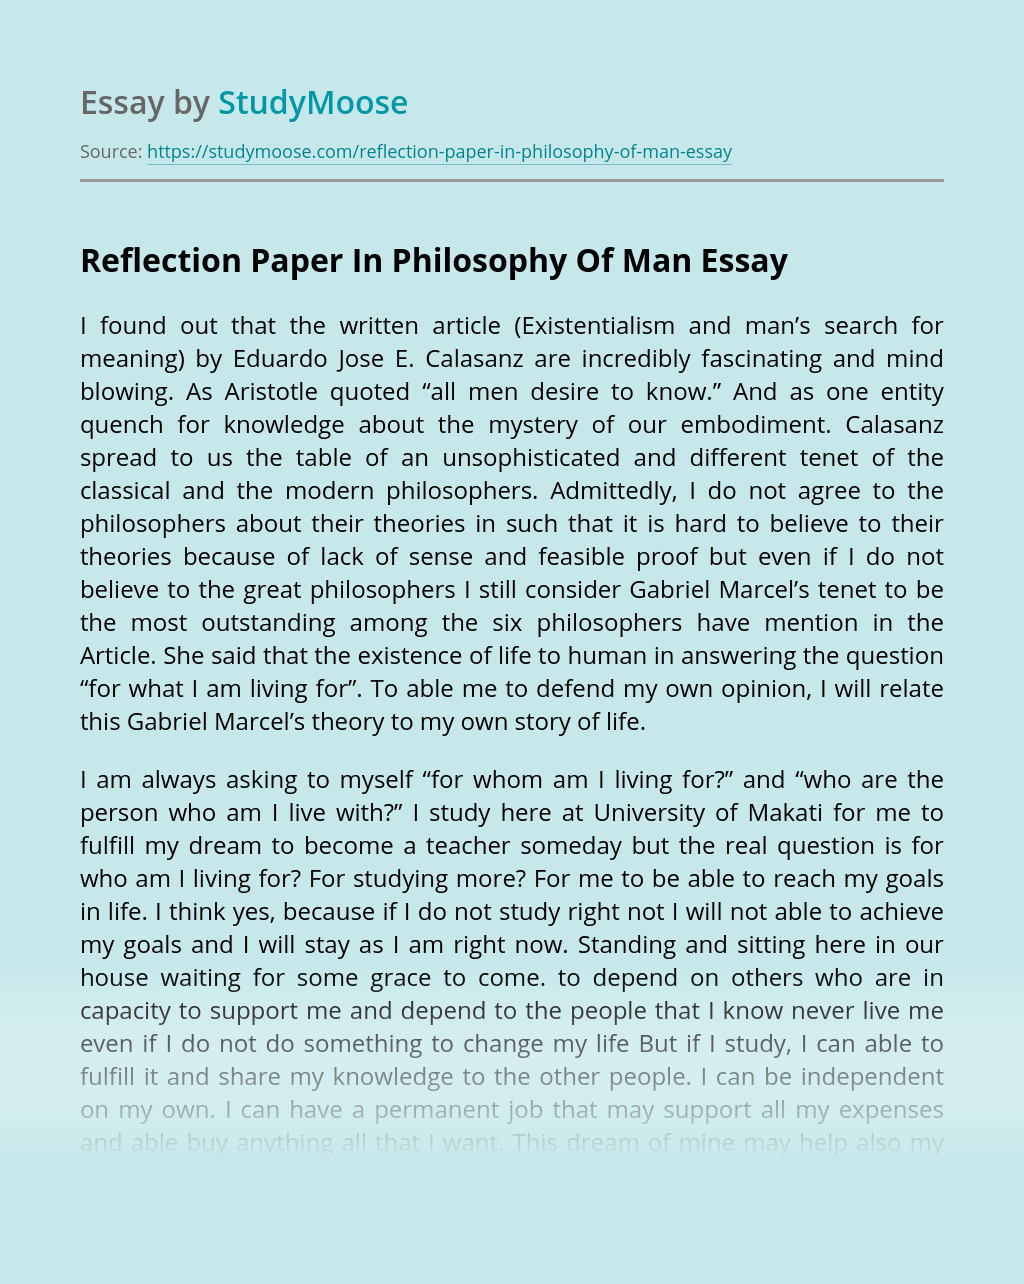 Reflection Paper In Philosophy Of Man